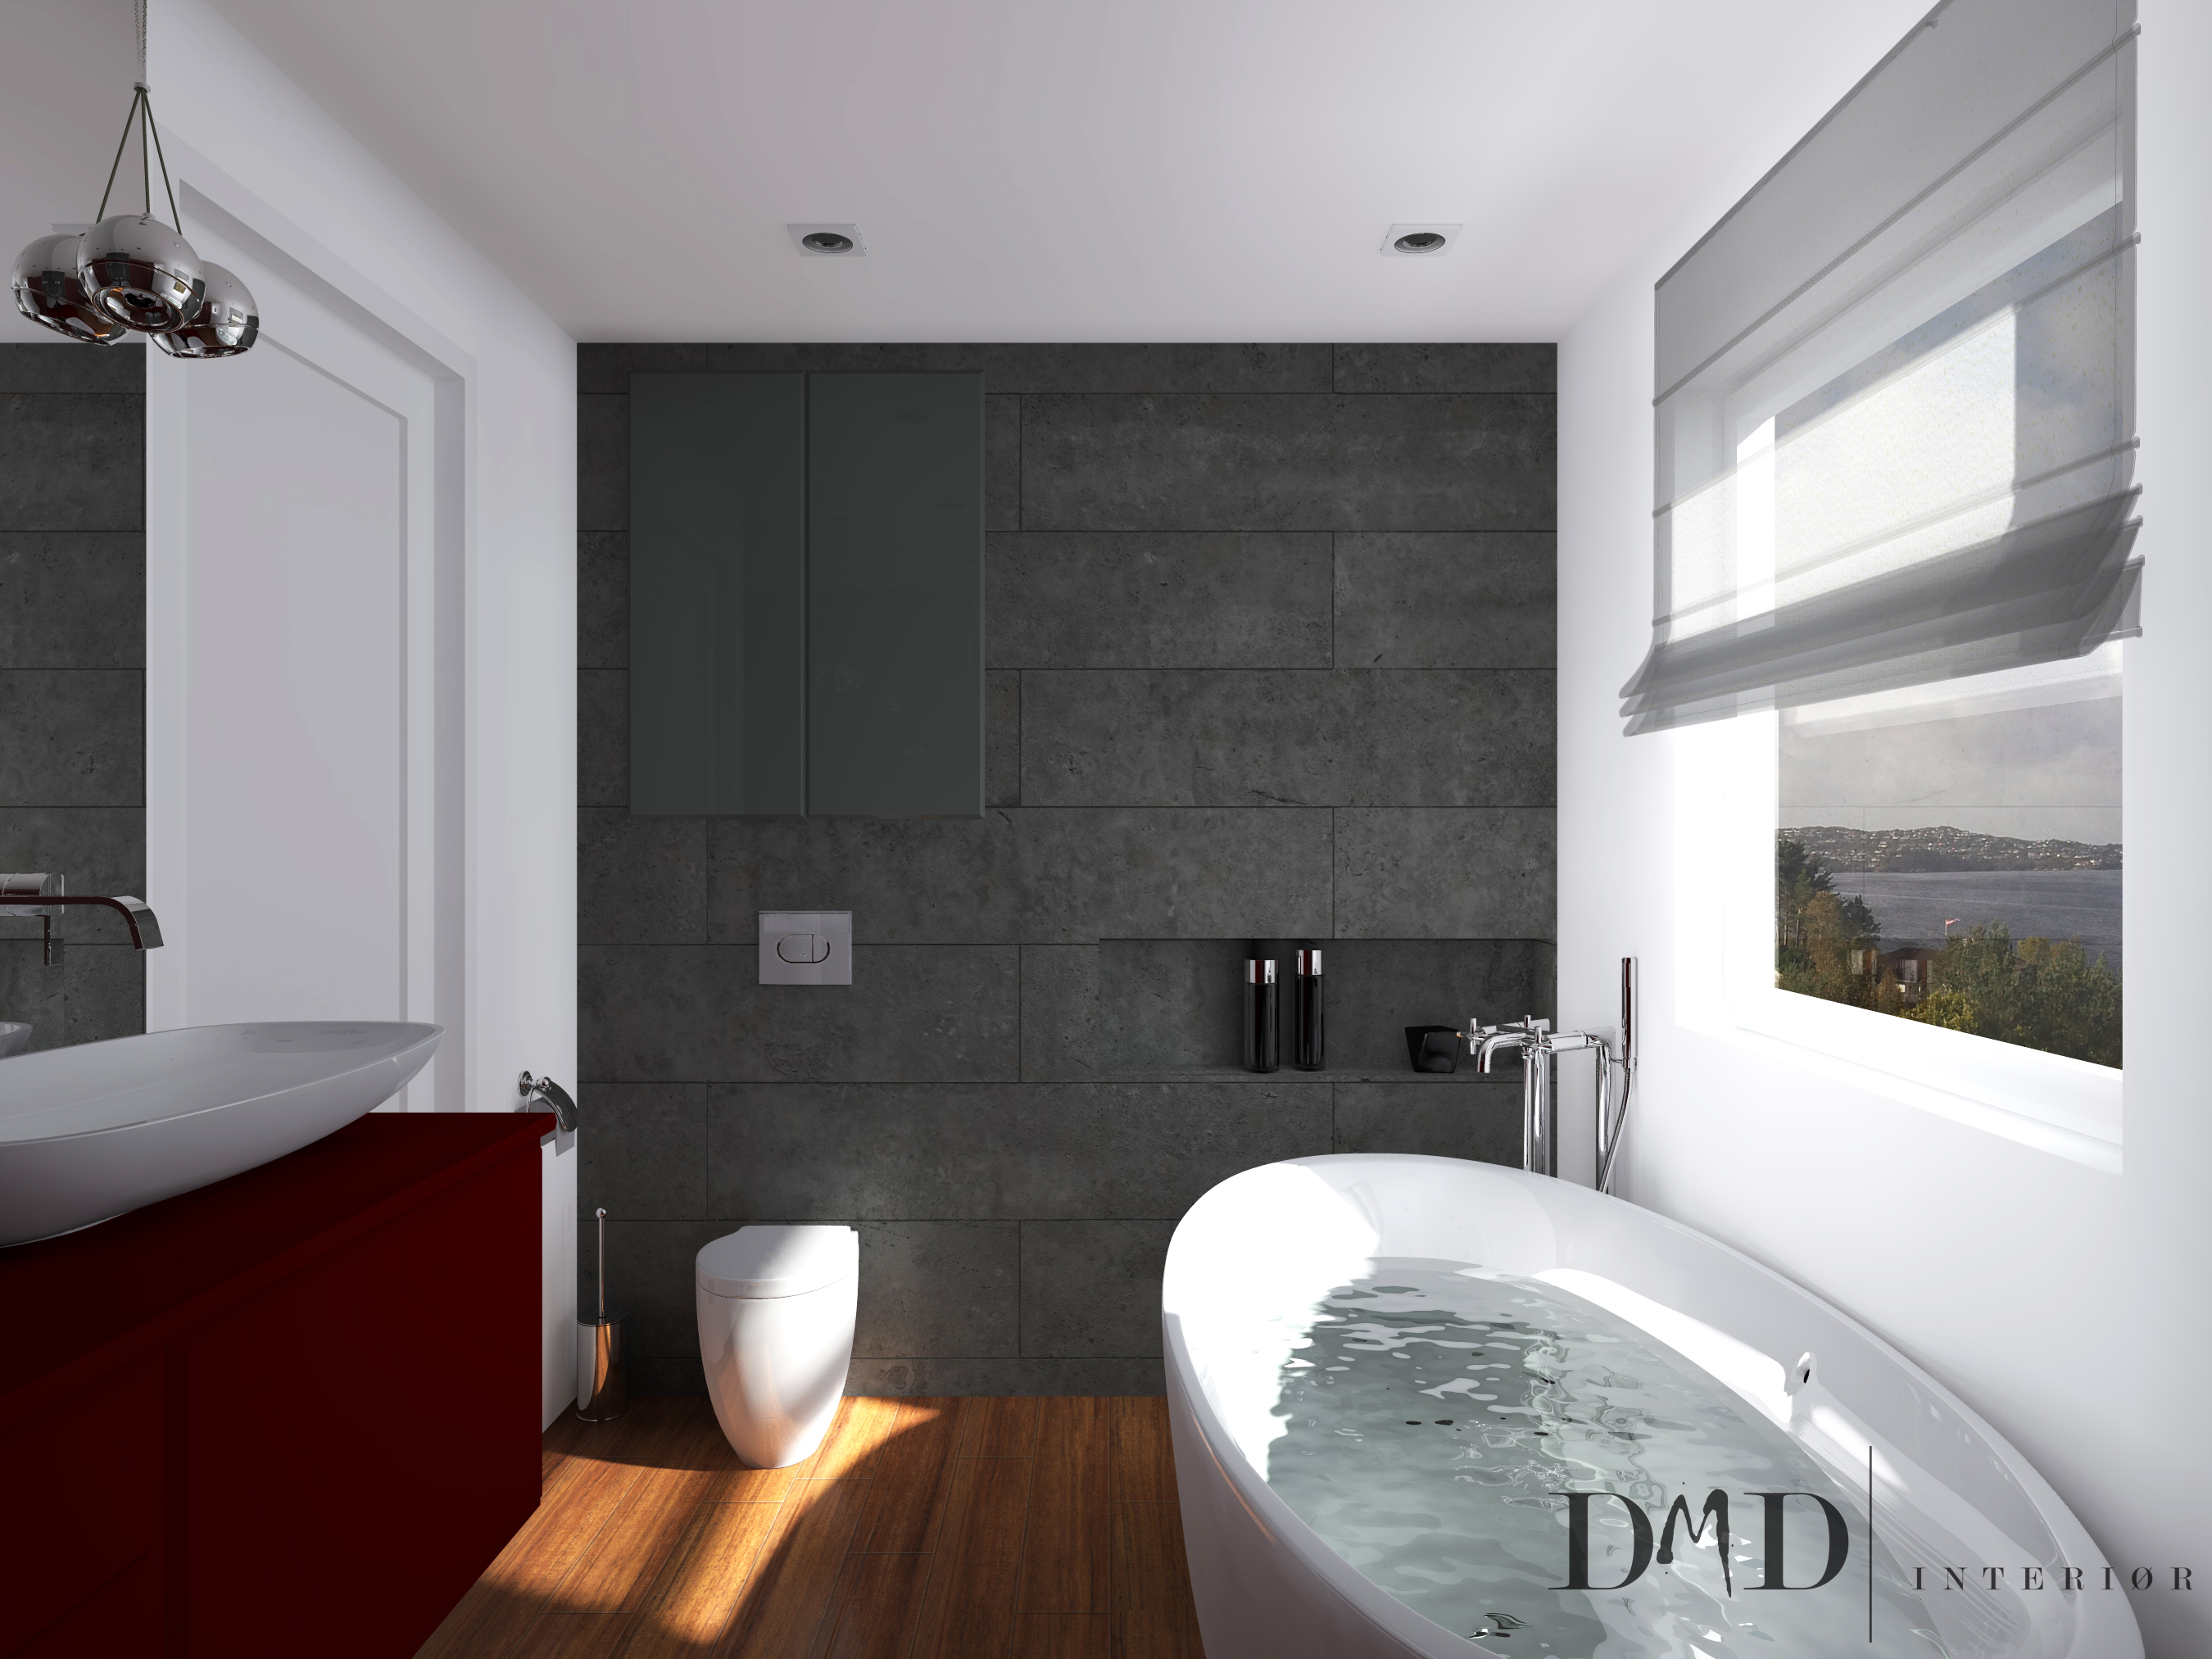 Stavanger bathroom dmd interior design for Bad designer